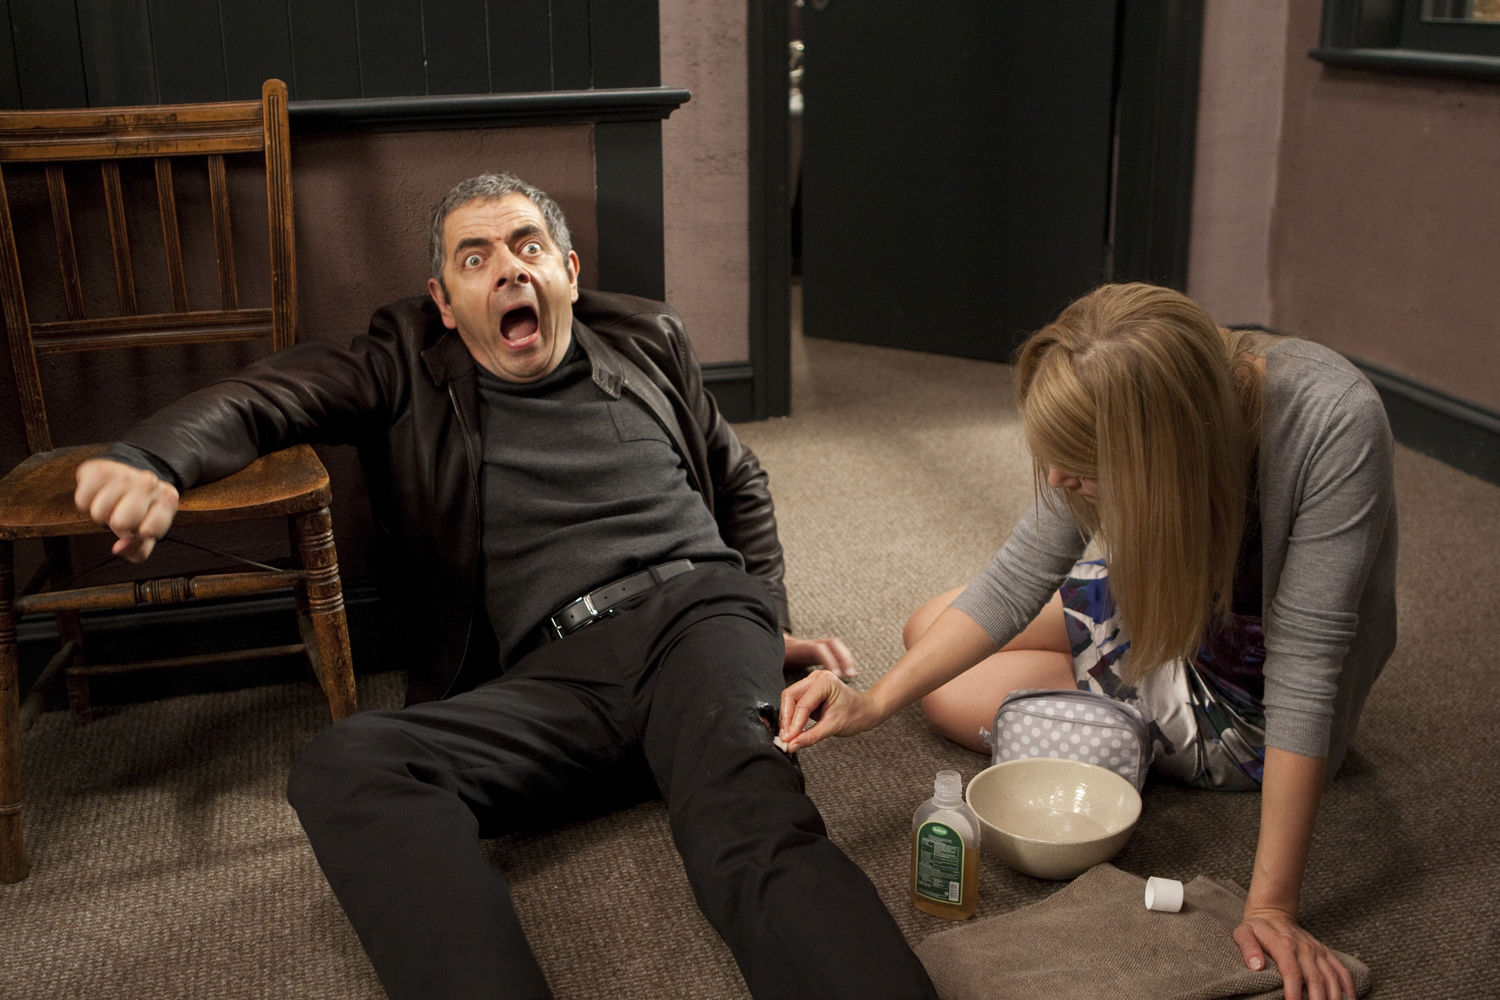 Rowan Atkinson and Rosamund Pike in Johnny English Reborn (2011)